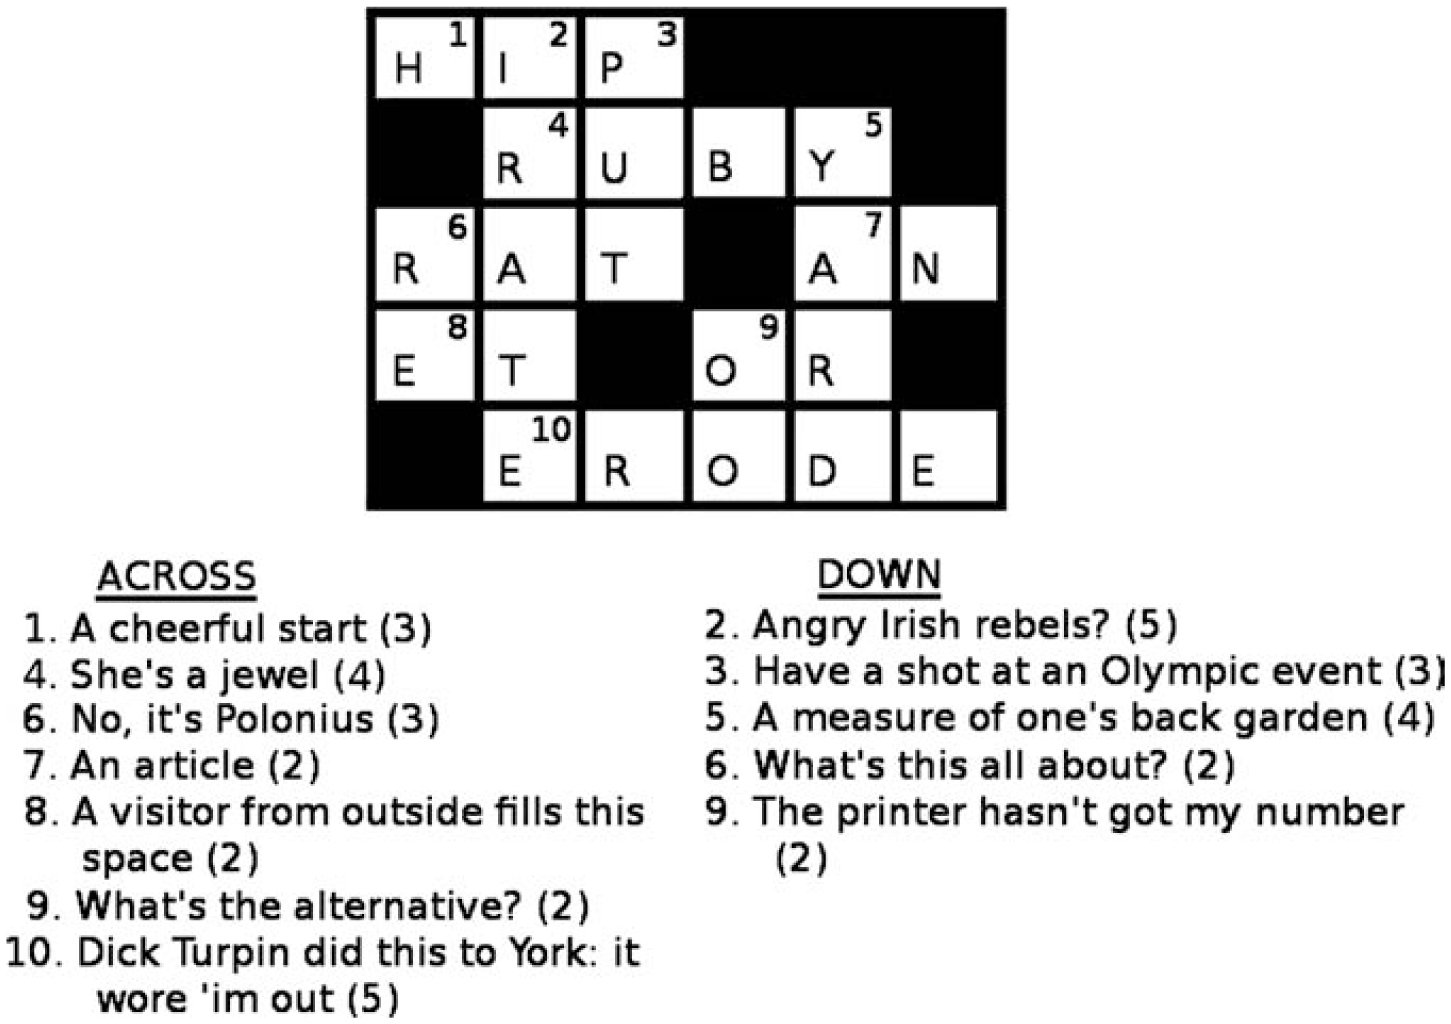 An Easy Fun Way To Teach About How Science Works Popularizing Haack S Crossword Puzzle Analogy